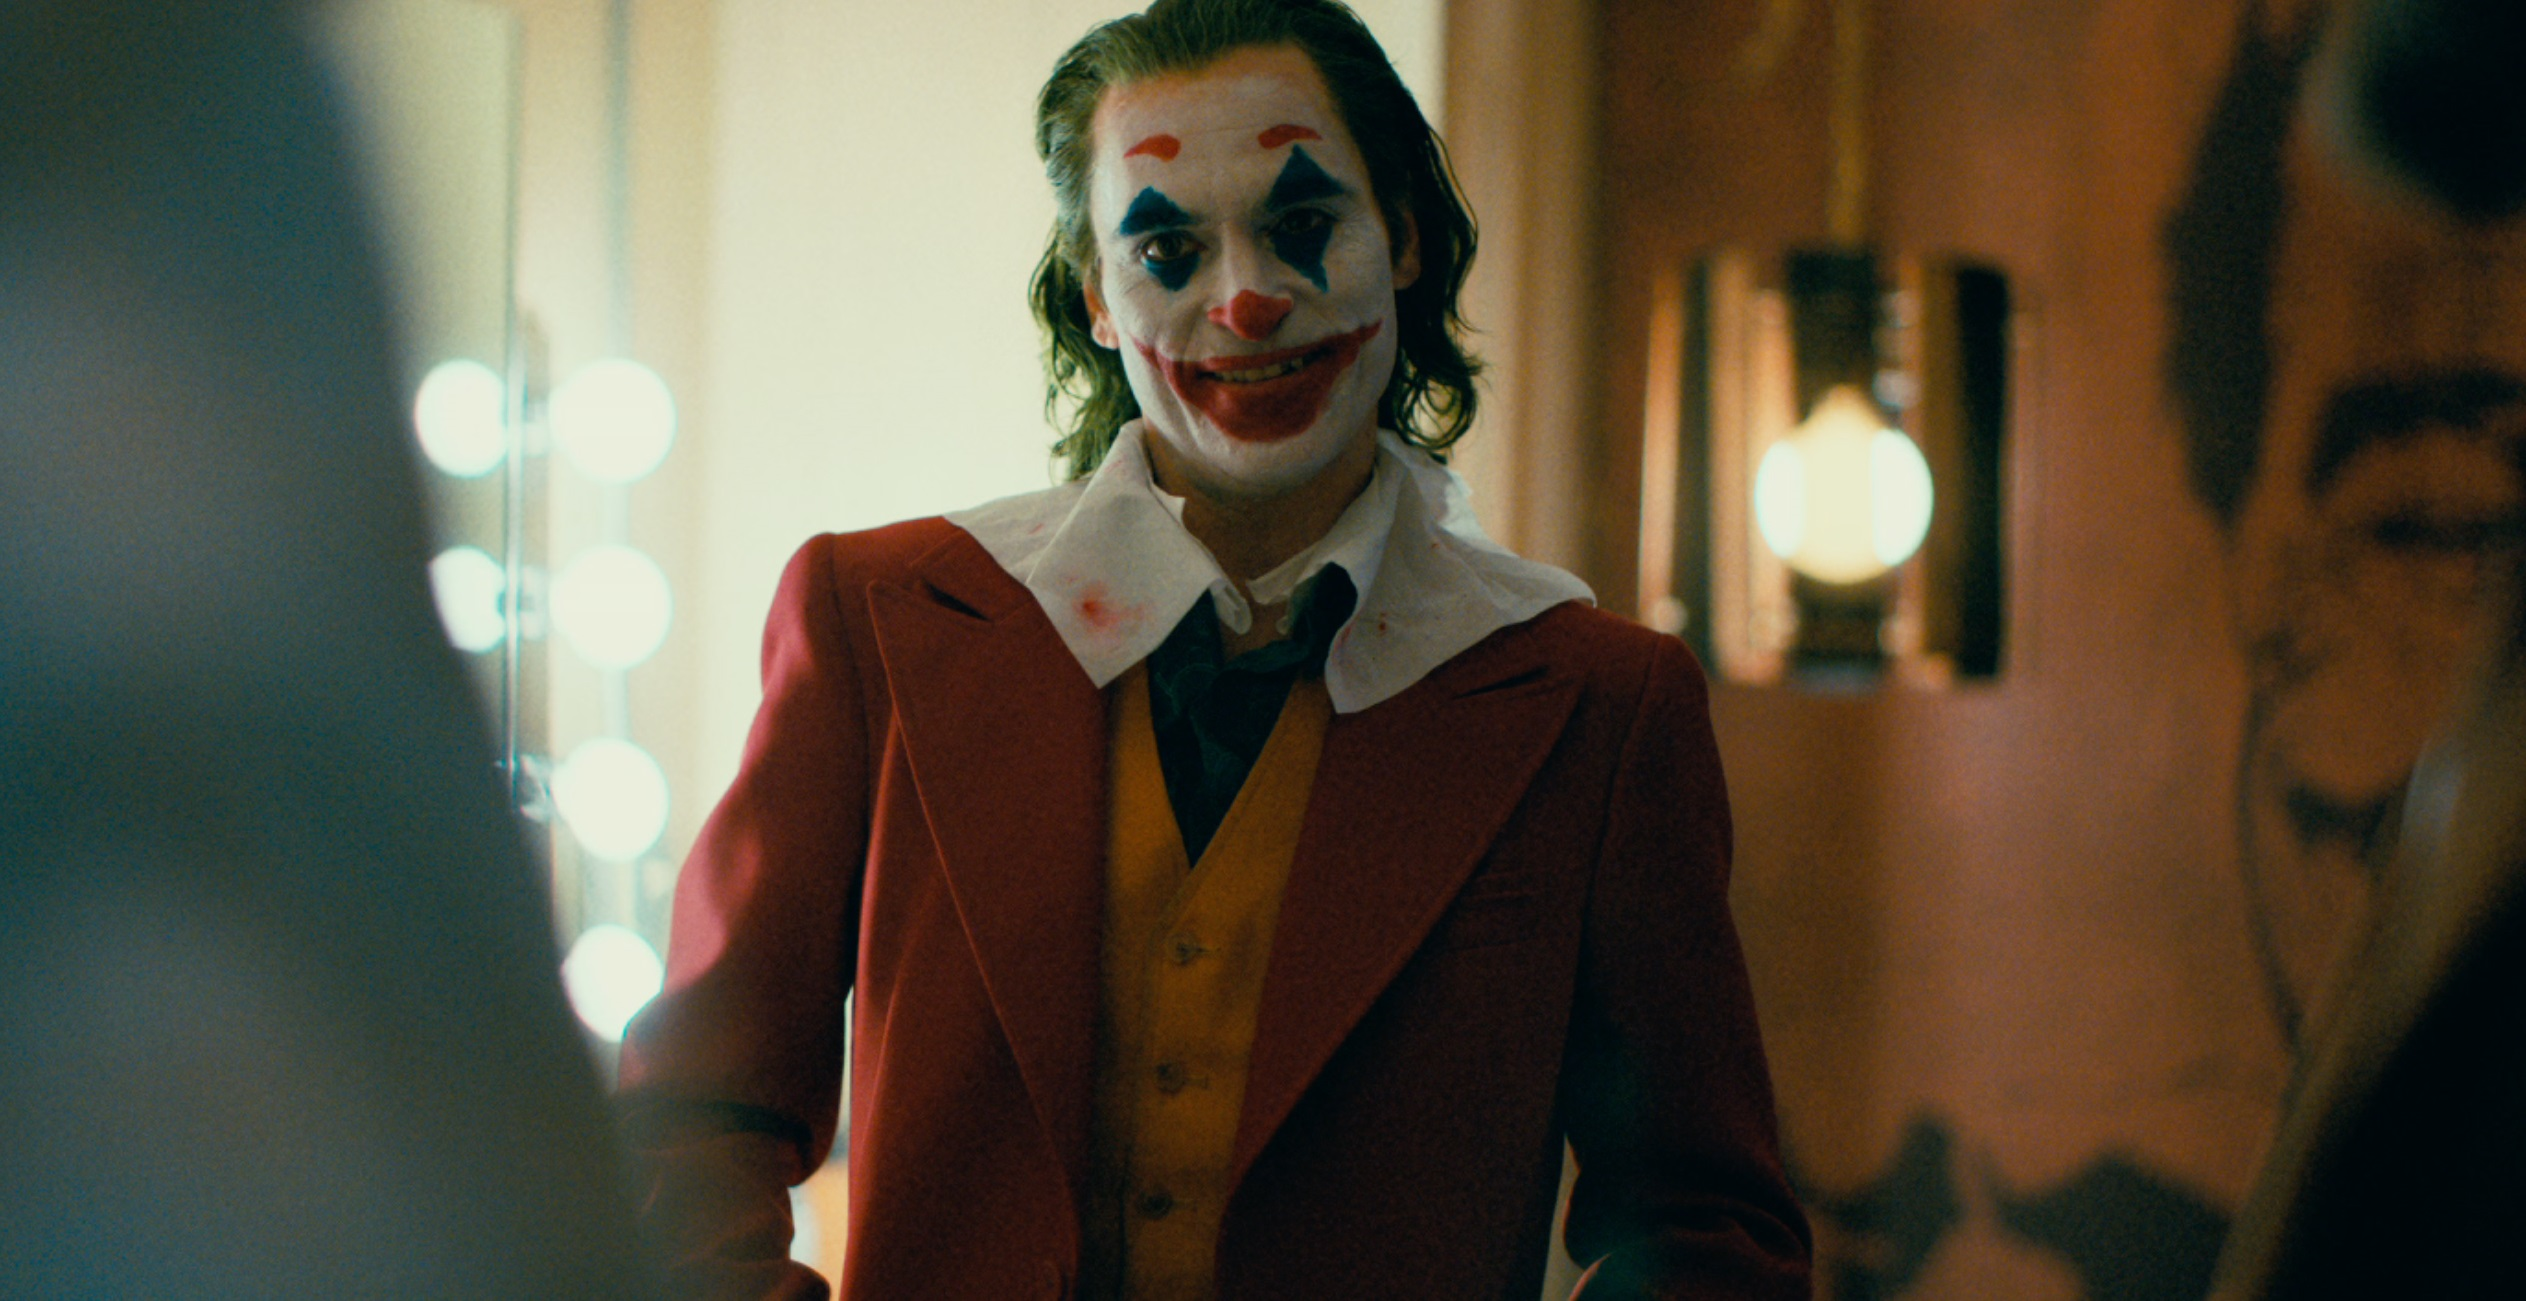 Joaquin Phoenix Dances And Smiles In New Joker Posters Dc